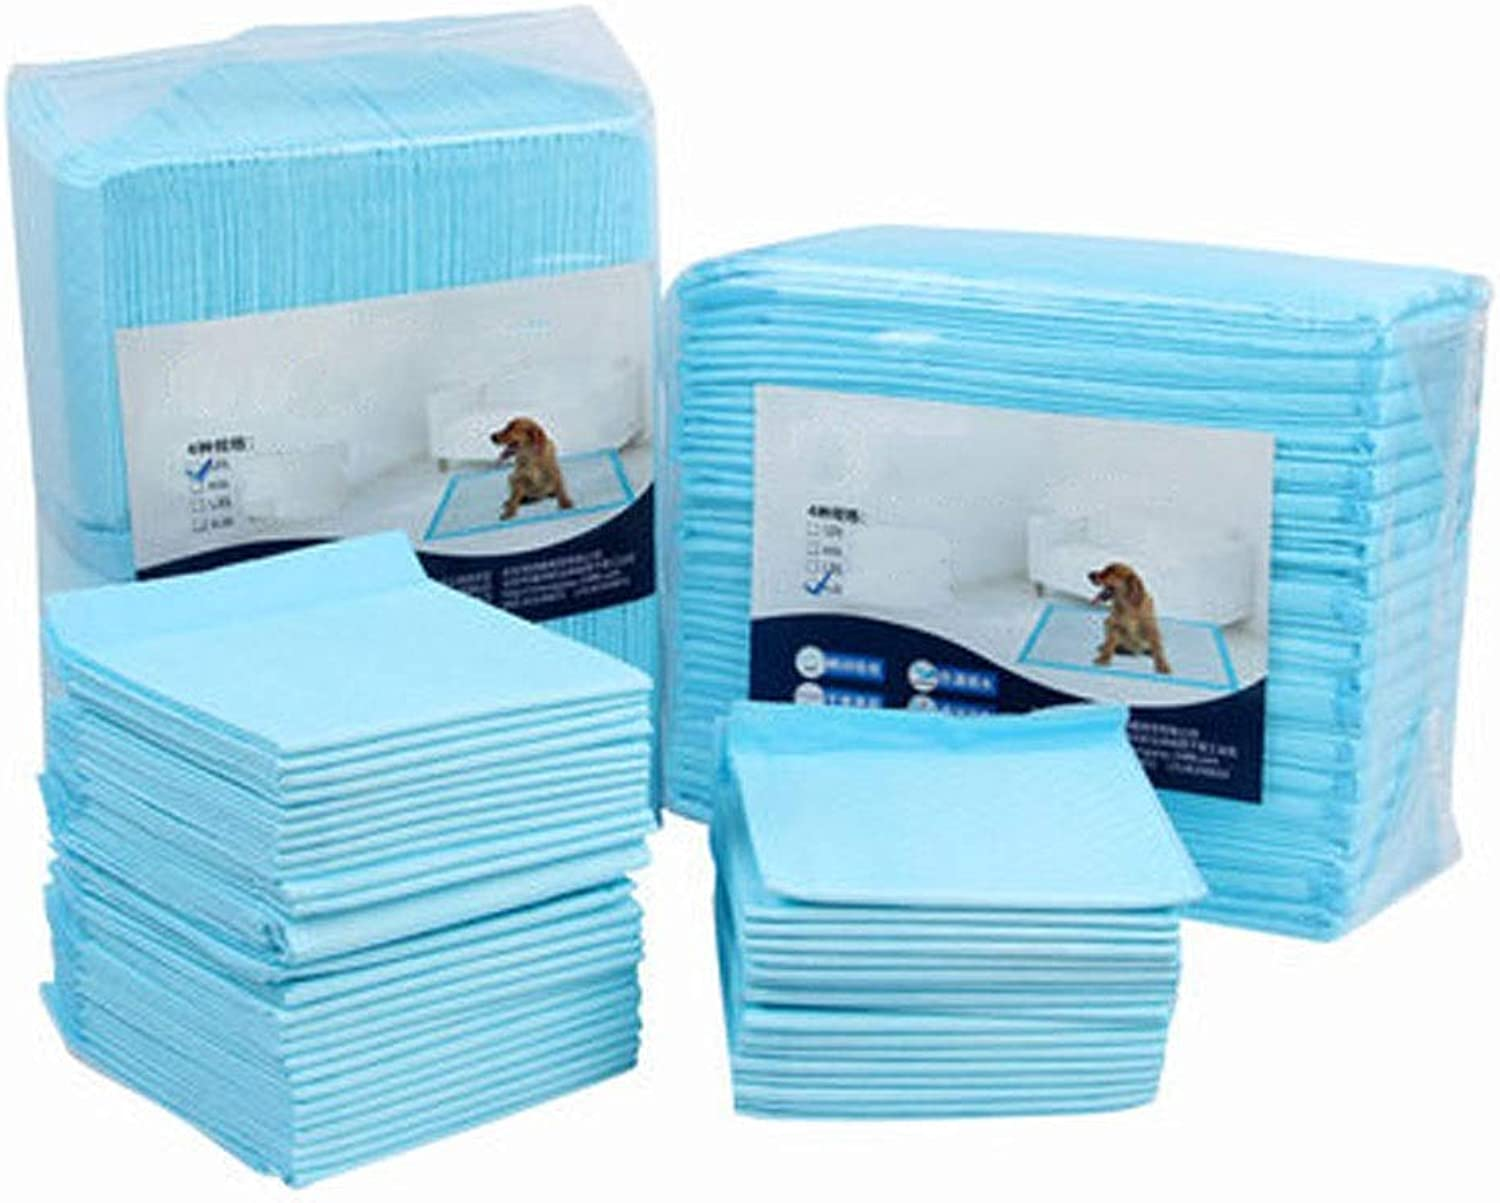 North cool pet Pee Pads Puppy Dog Kitten Training Pee Pads Toilet Diapers Ultra Absorbent with Odour Control Technology, Dog Diapers (Size   80pack)